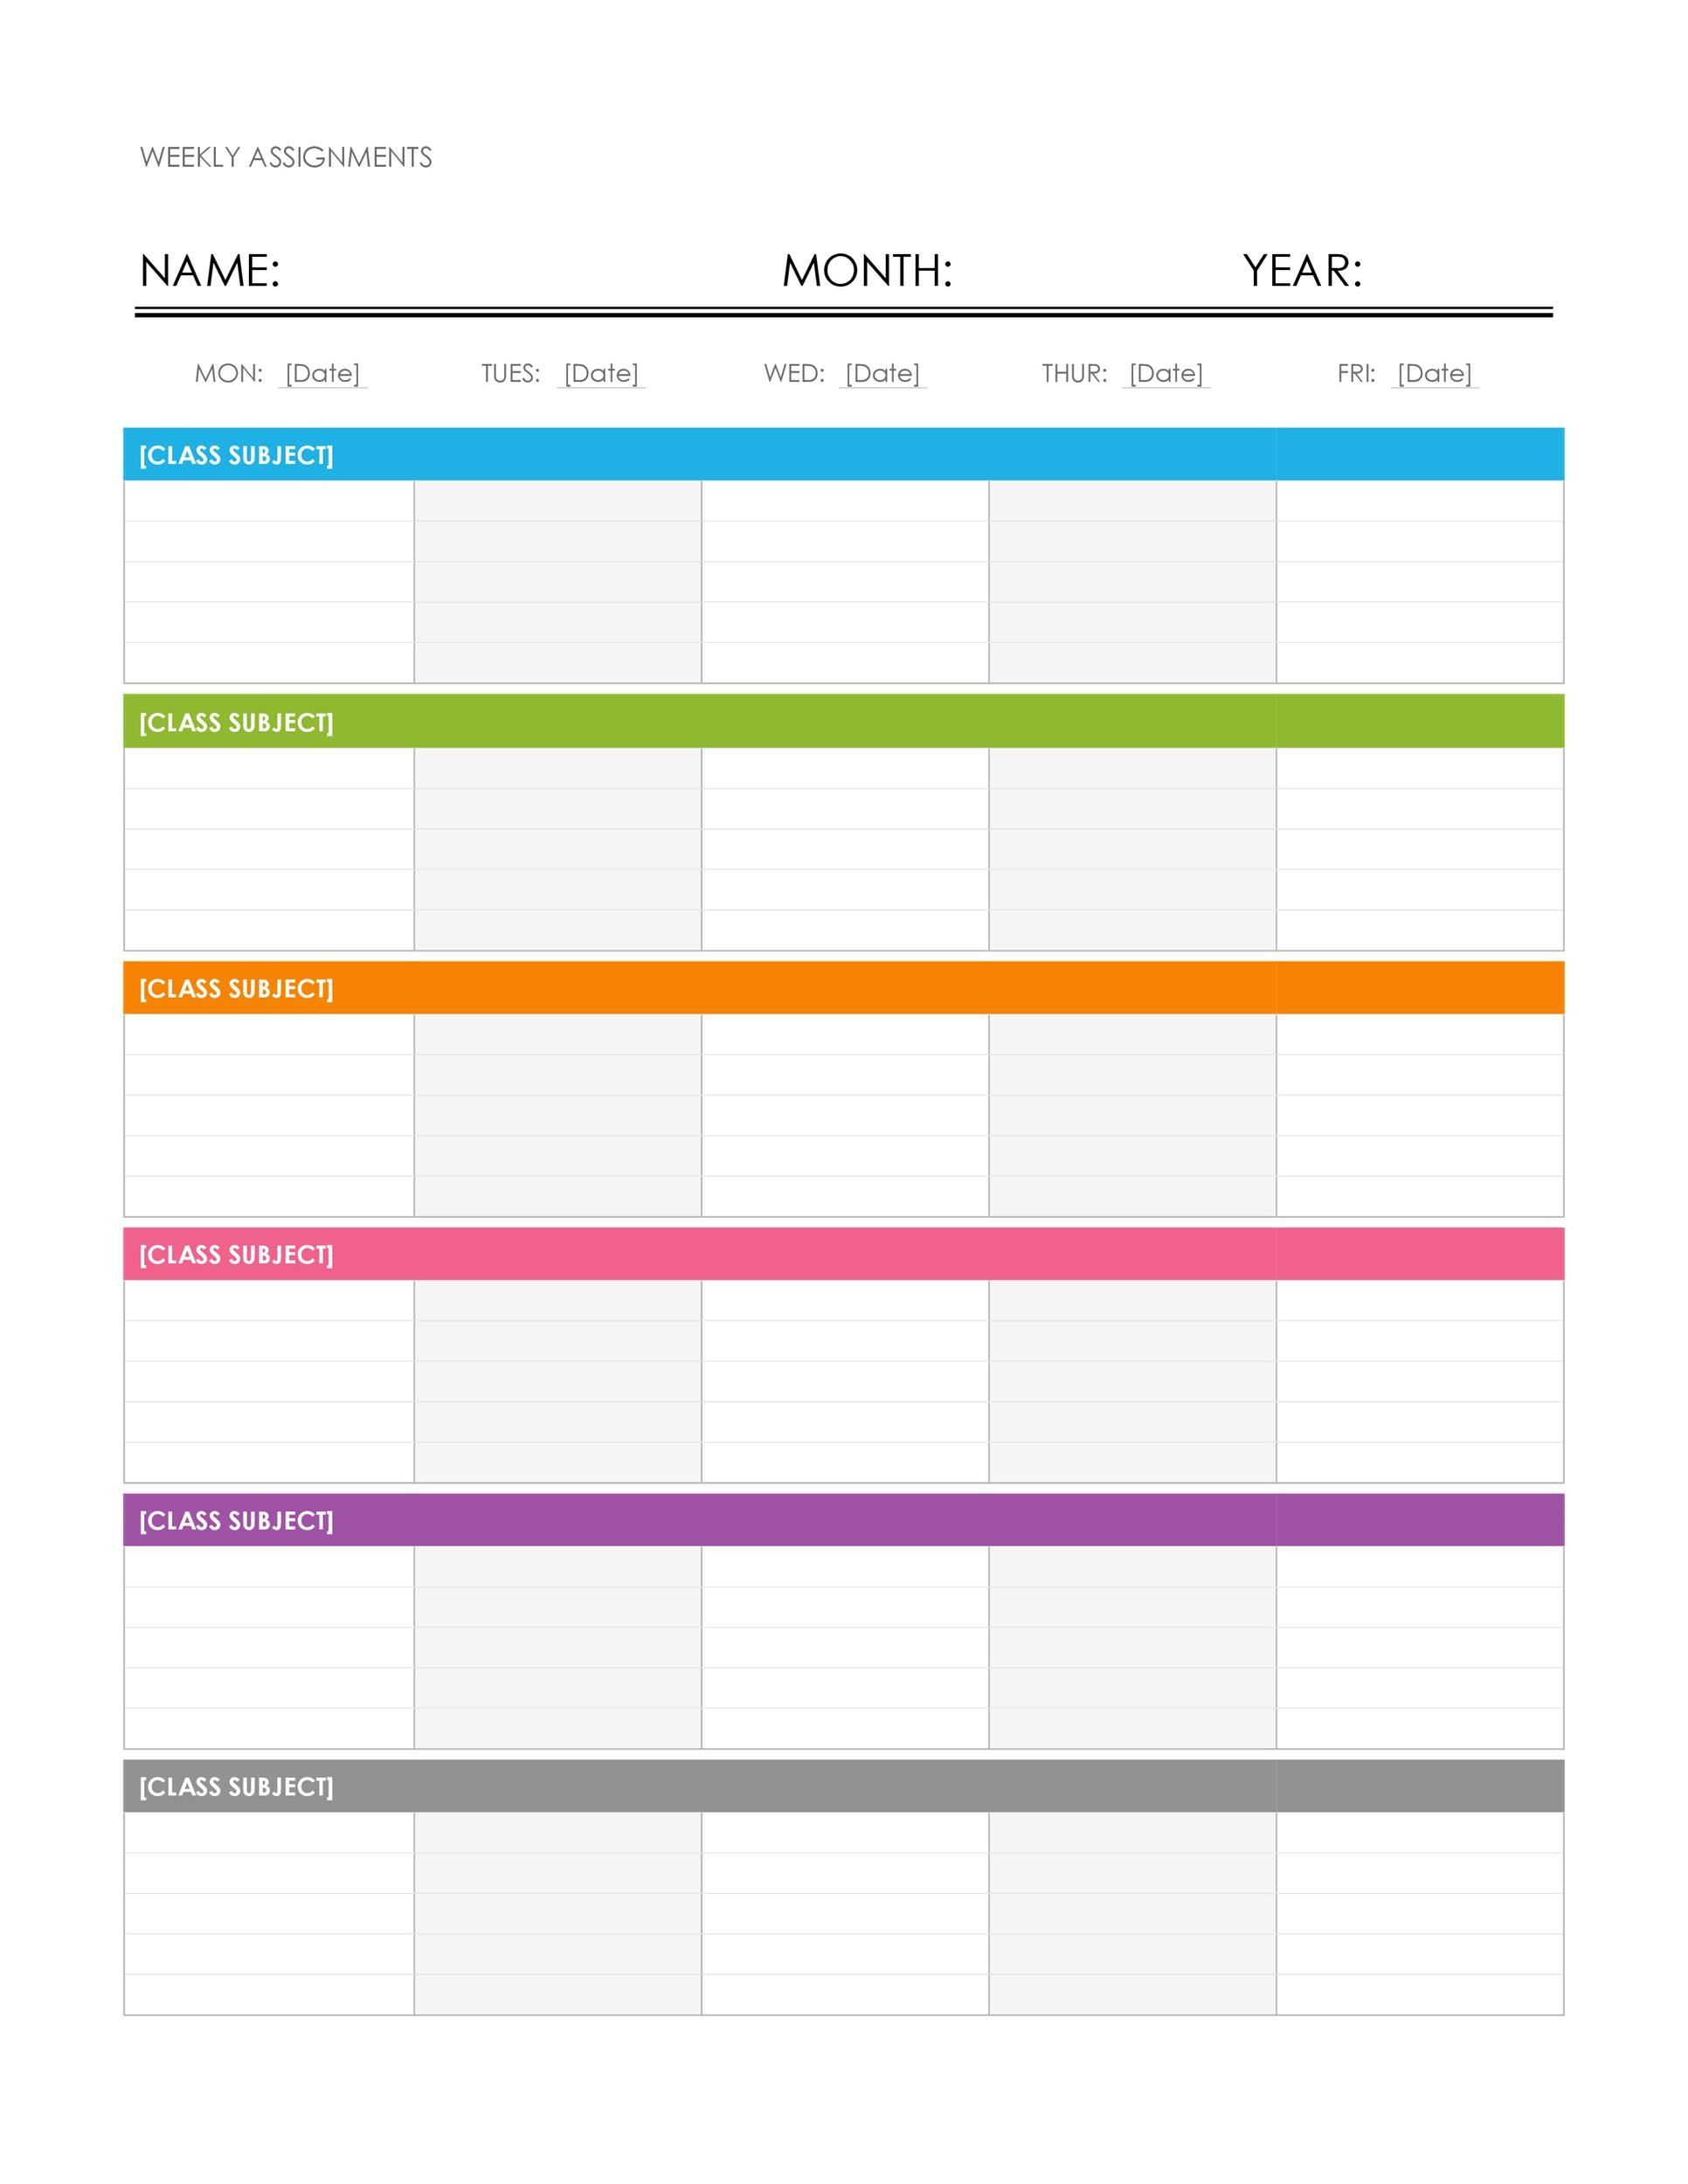 Weekly Year Calendar Template : Blank weekly calendar templates pdf excel word